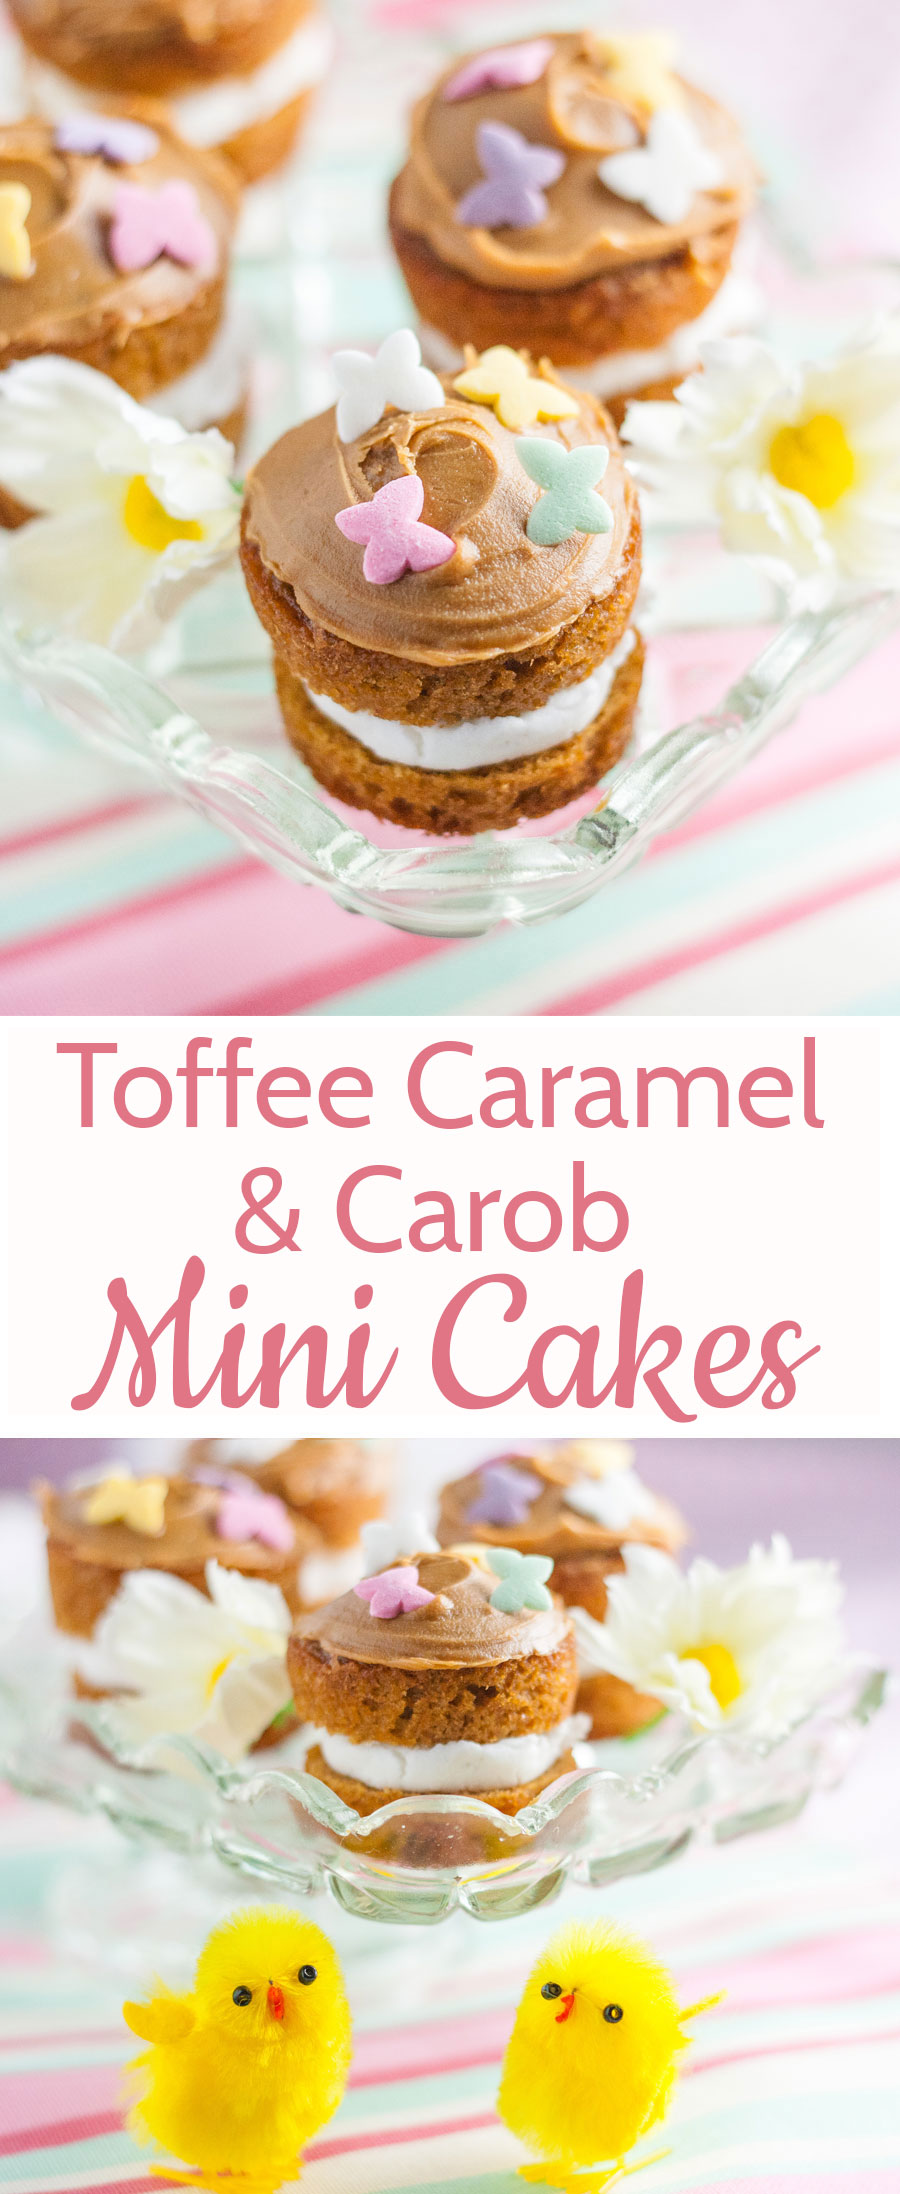 These adorable mini toffee caramel flavoured cakes are perfect for Spring!